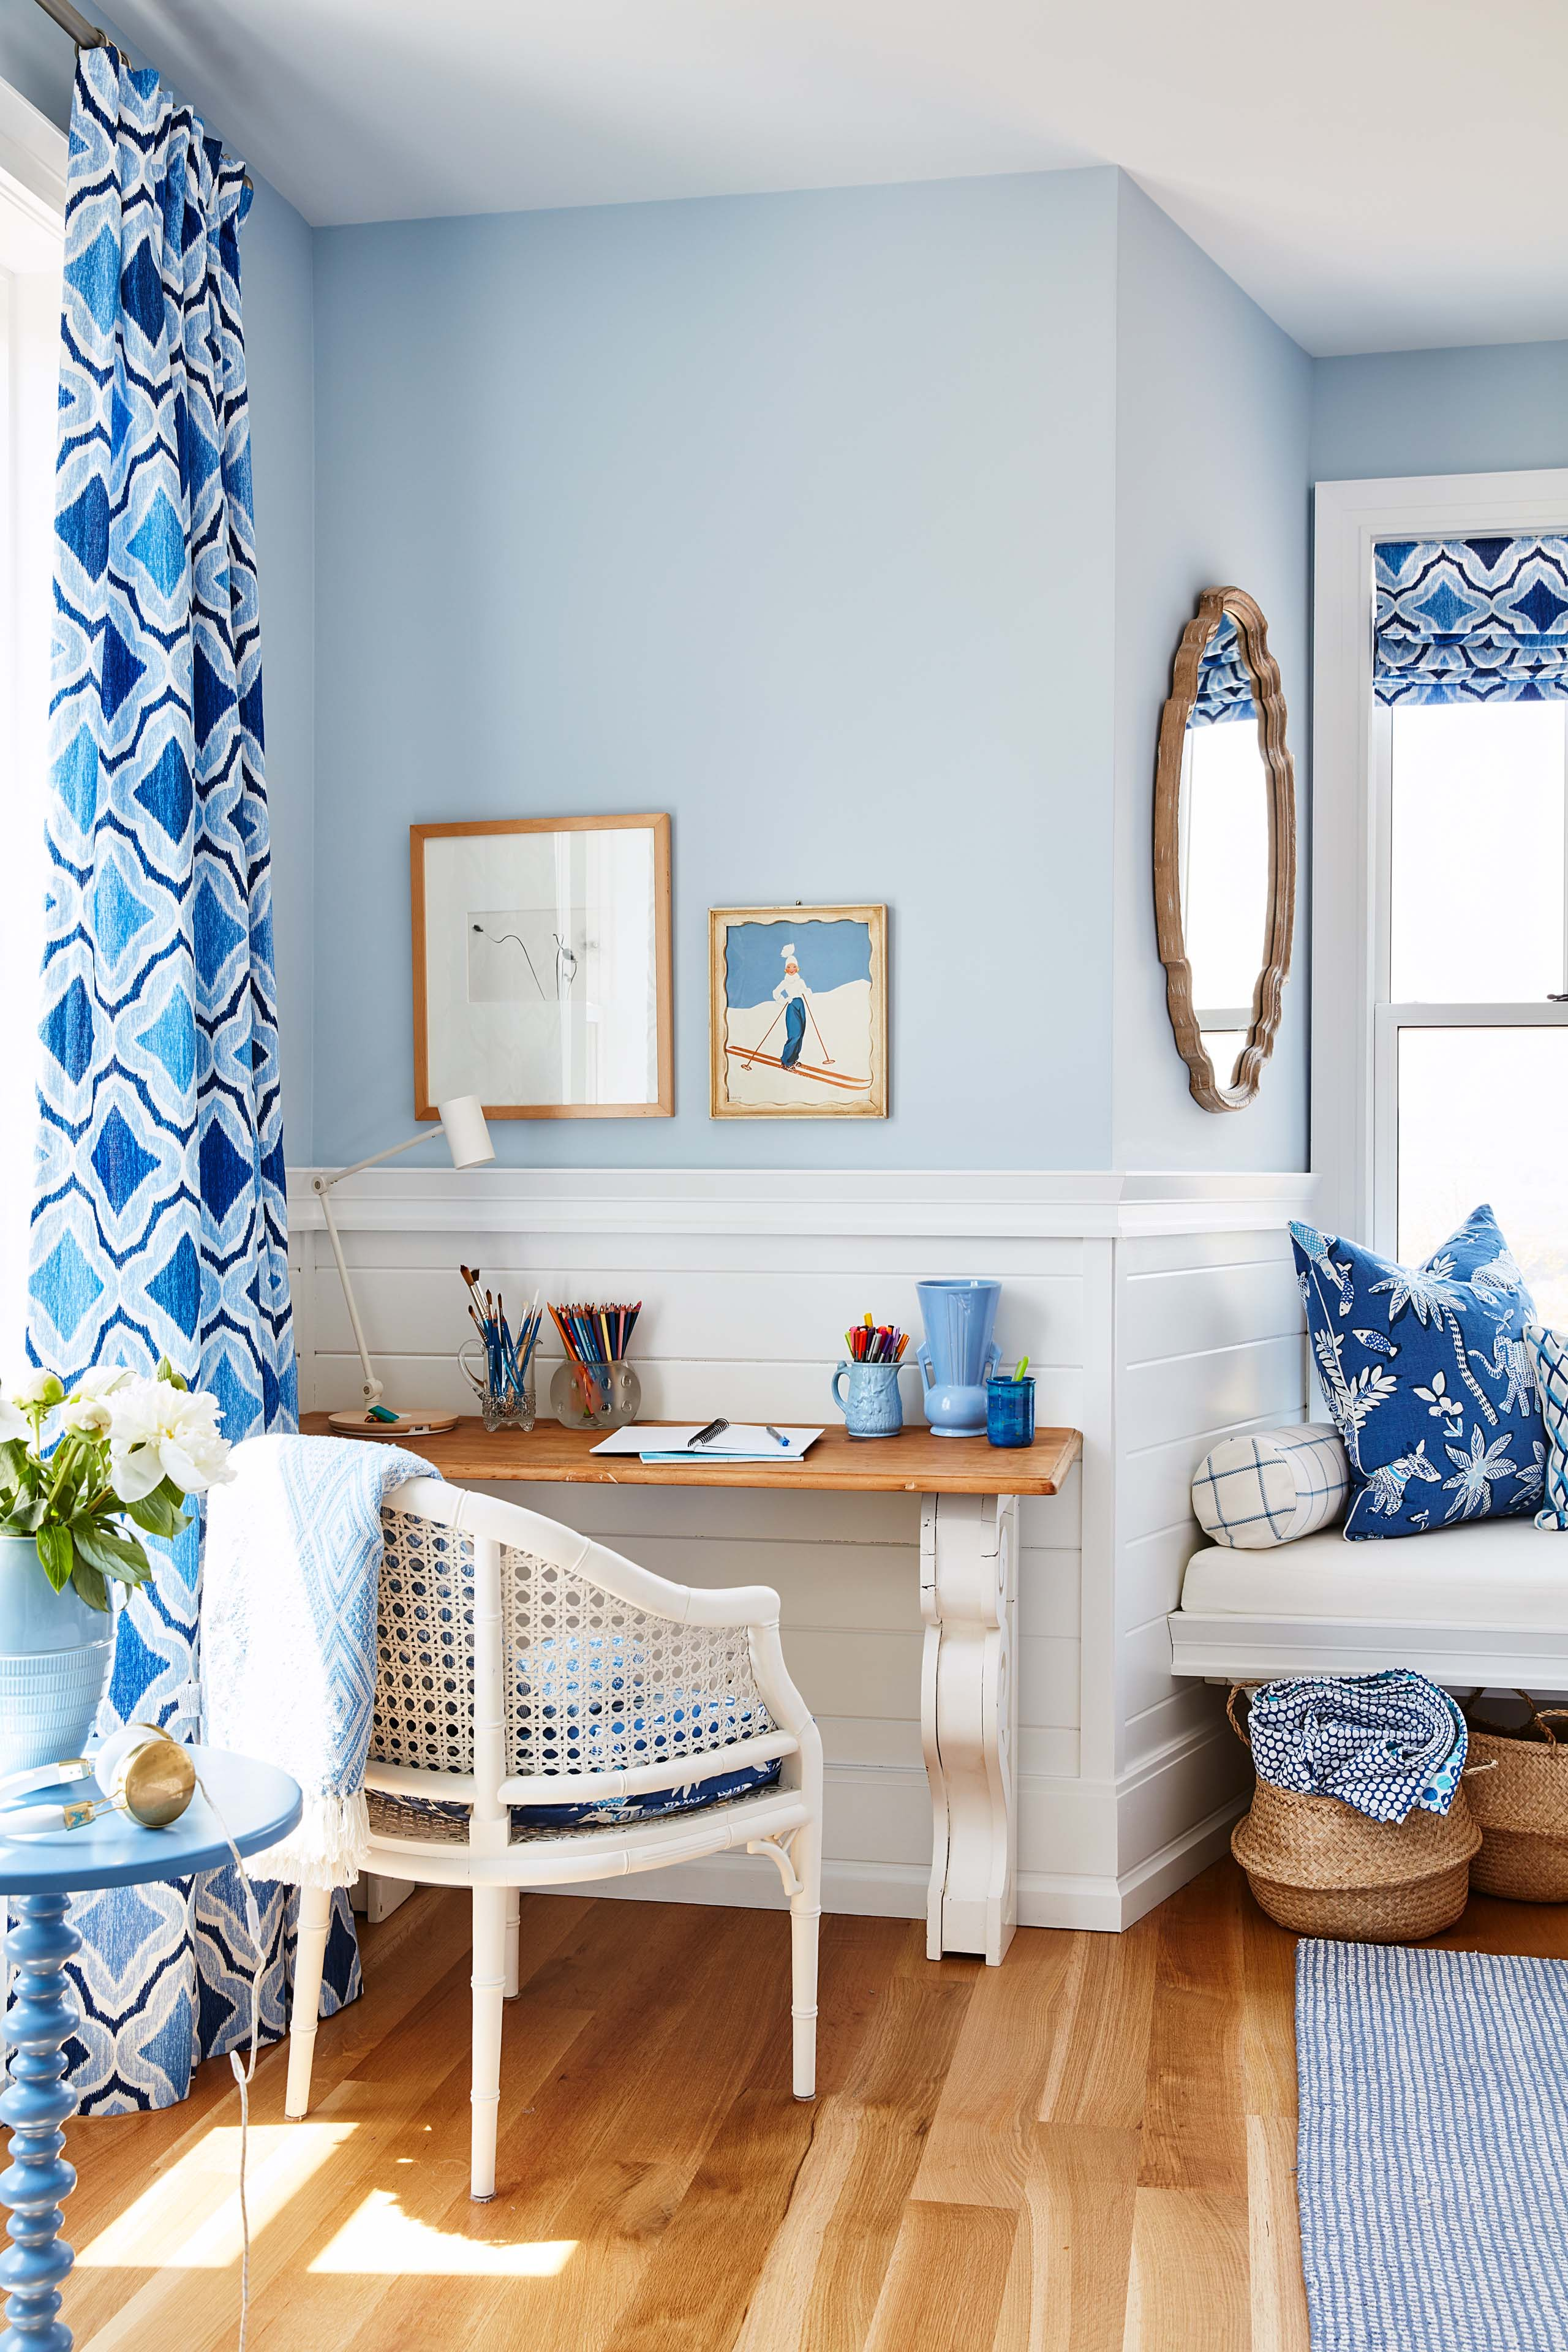 Multiple blues in bedroom by #SarahRichardson with bold prints. #blueandwhite #windowseat